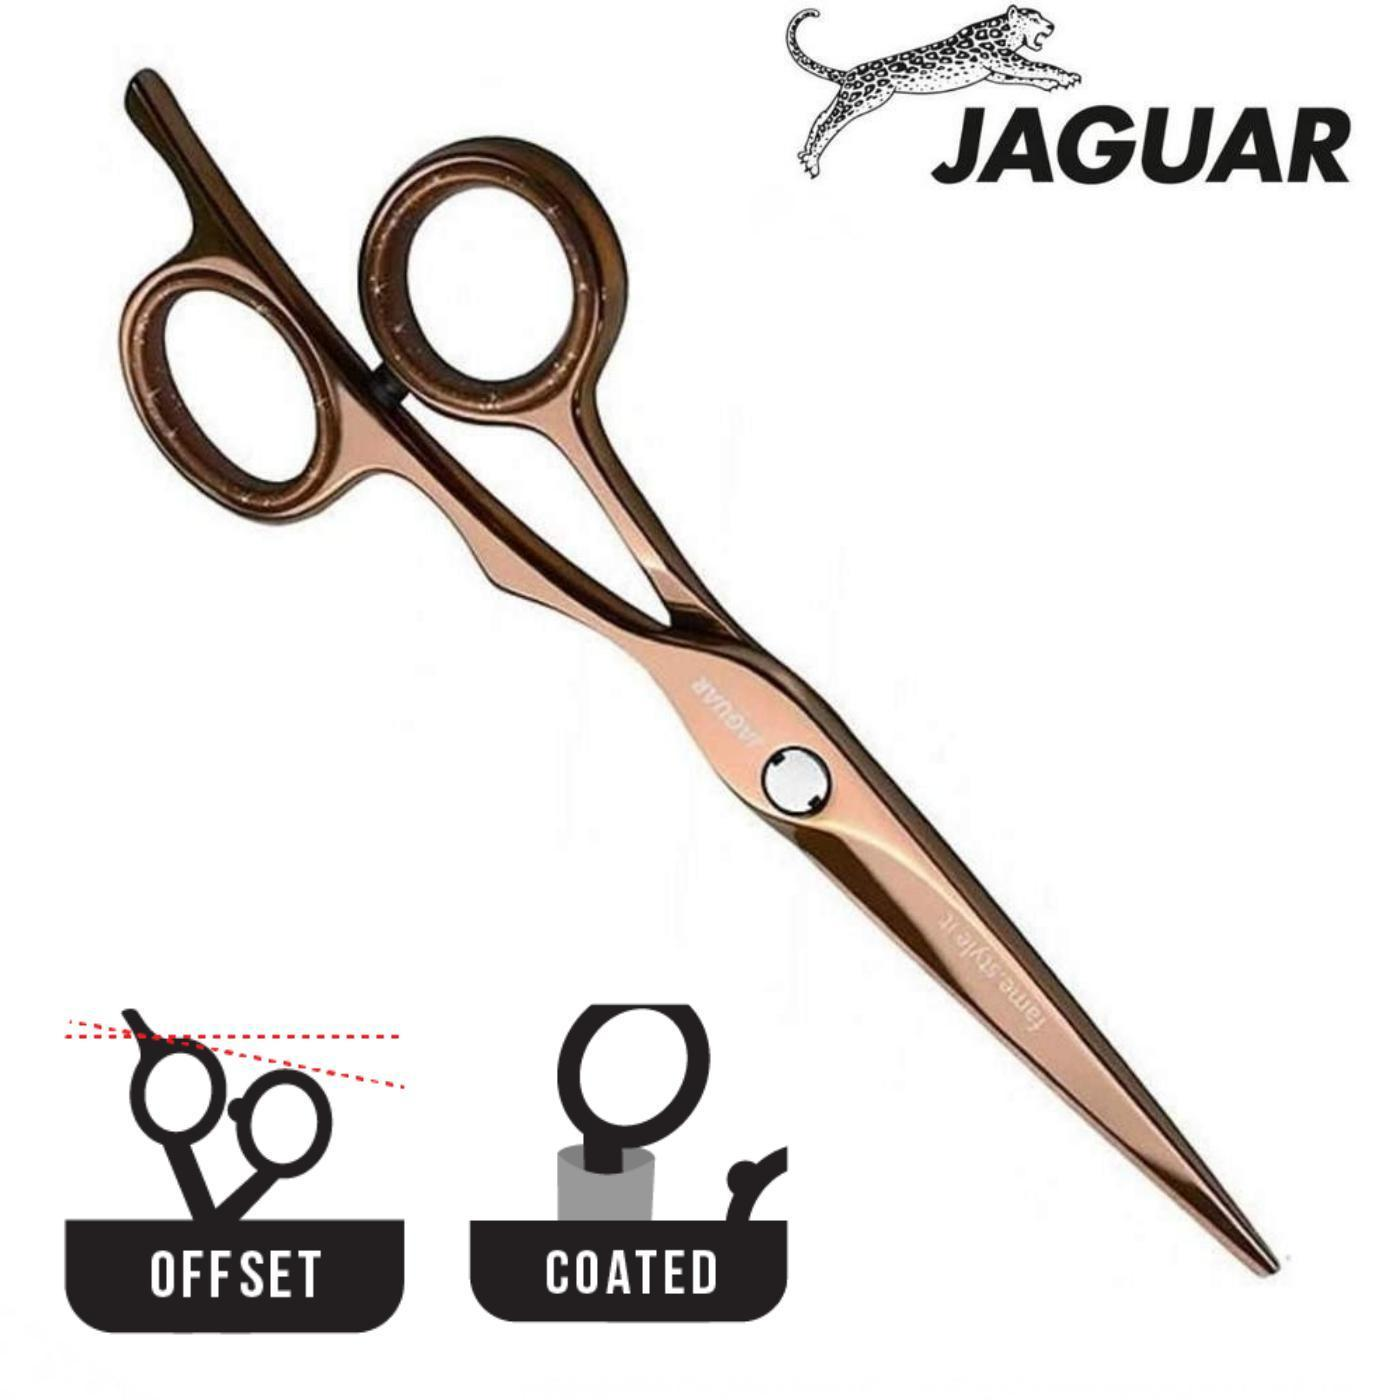 Jaguar Silver Line Fame Rose Gold Hair Scissors - Japan Scissors